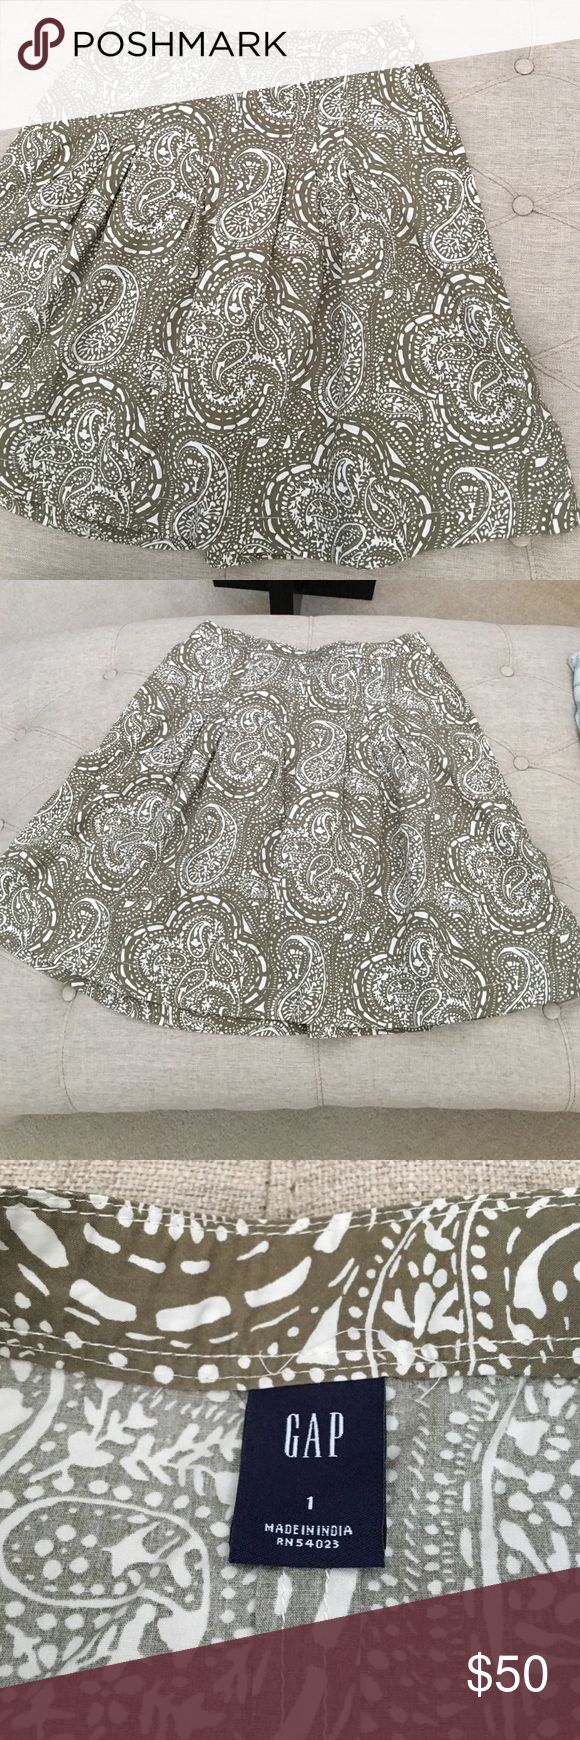 Gap Skirt Beautiful Gap Skirt Size 1 approx knee length. Too small for me. As you can see, the inside tag hasn't been removed. NWOT condition . Bundle to save; offers considered GAP Skirts